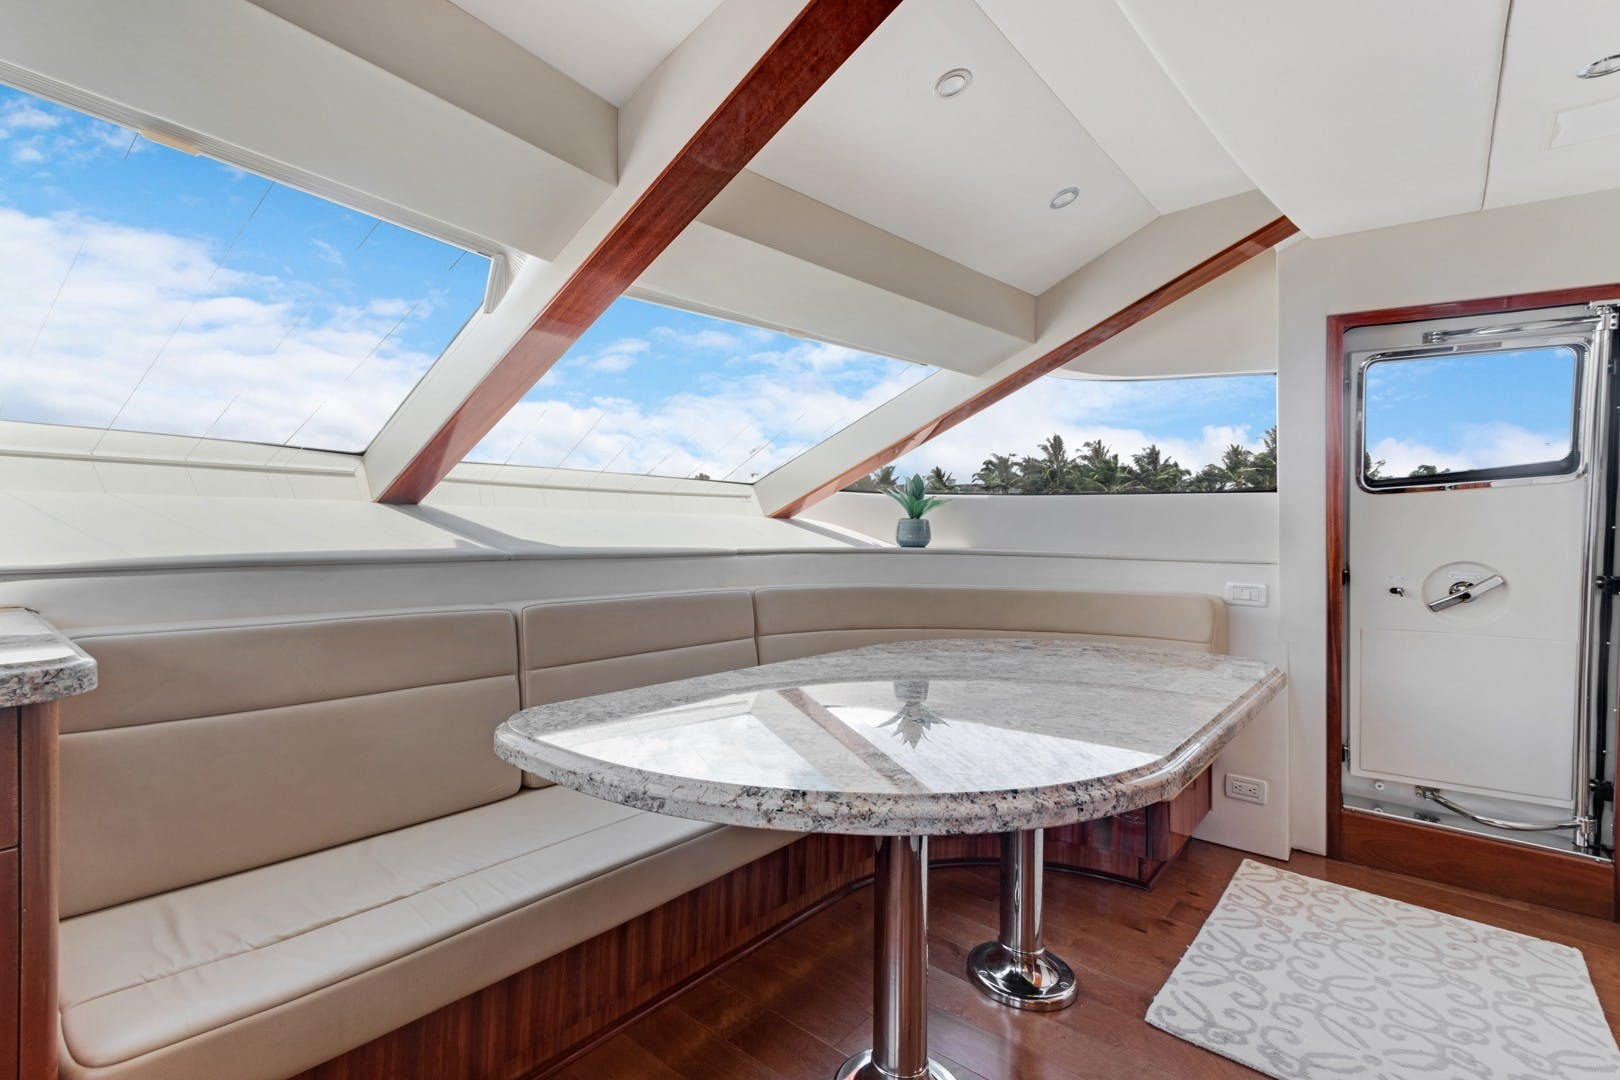 2012 Hatteras 80' Enclosed Bridge Motor Yacht OBSESSION   Picture 8 of 76